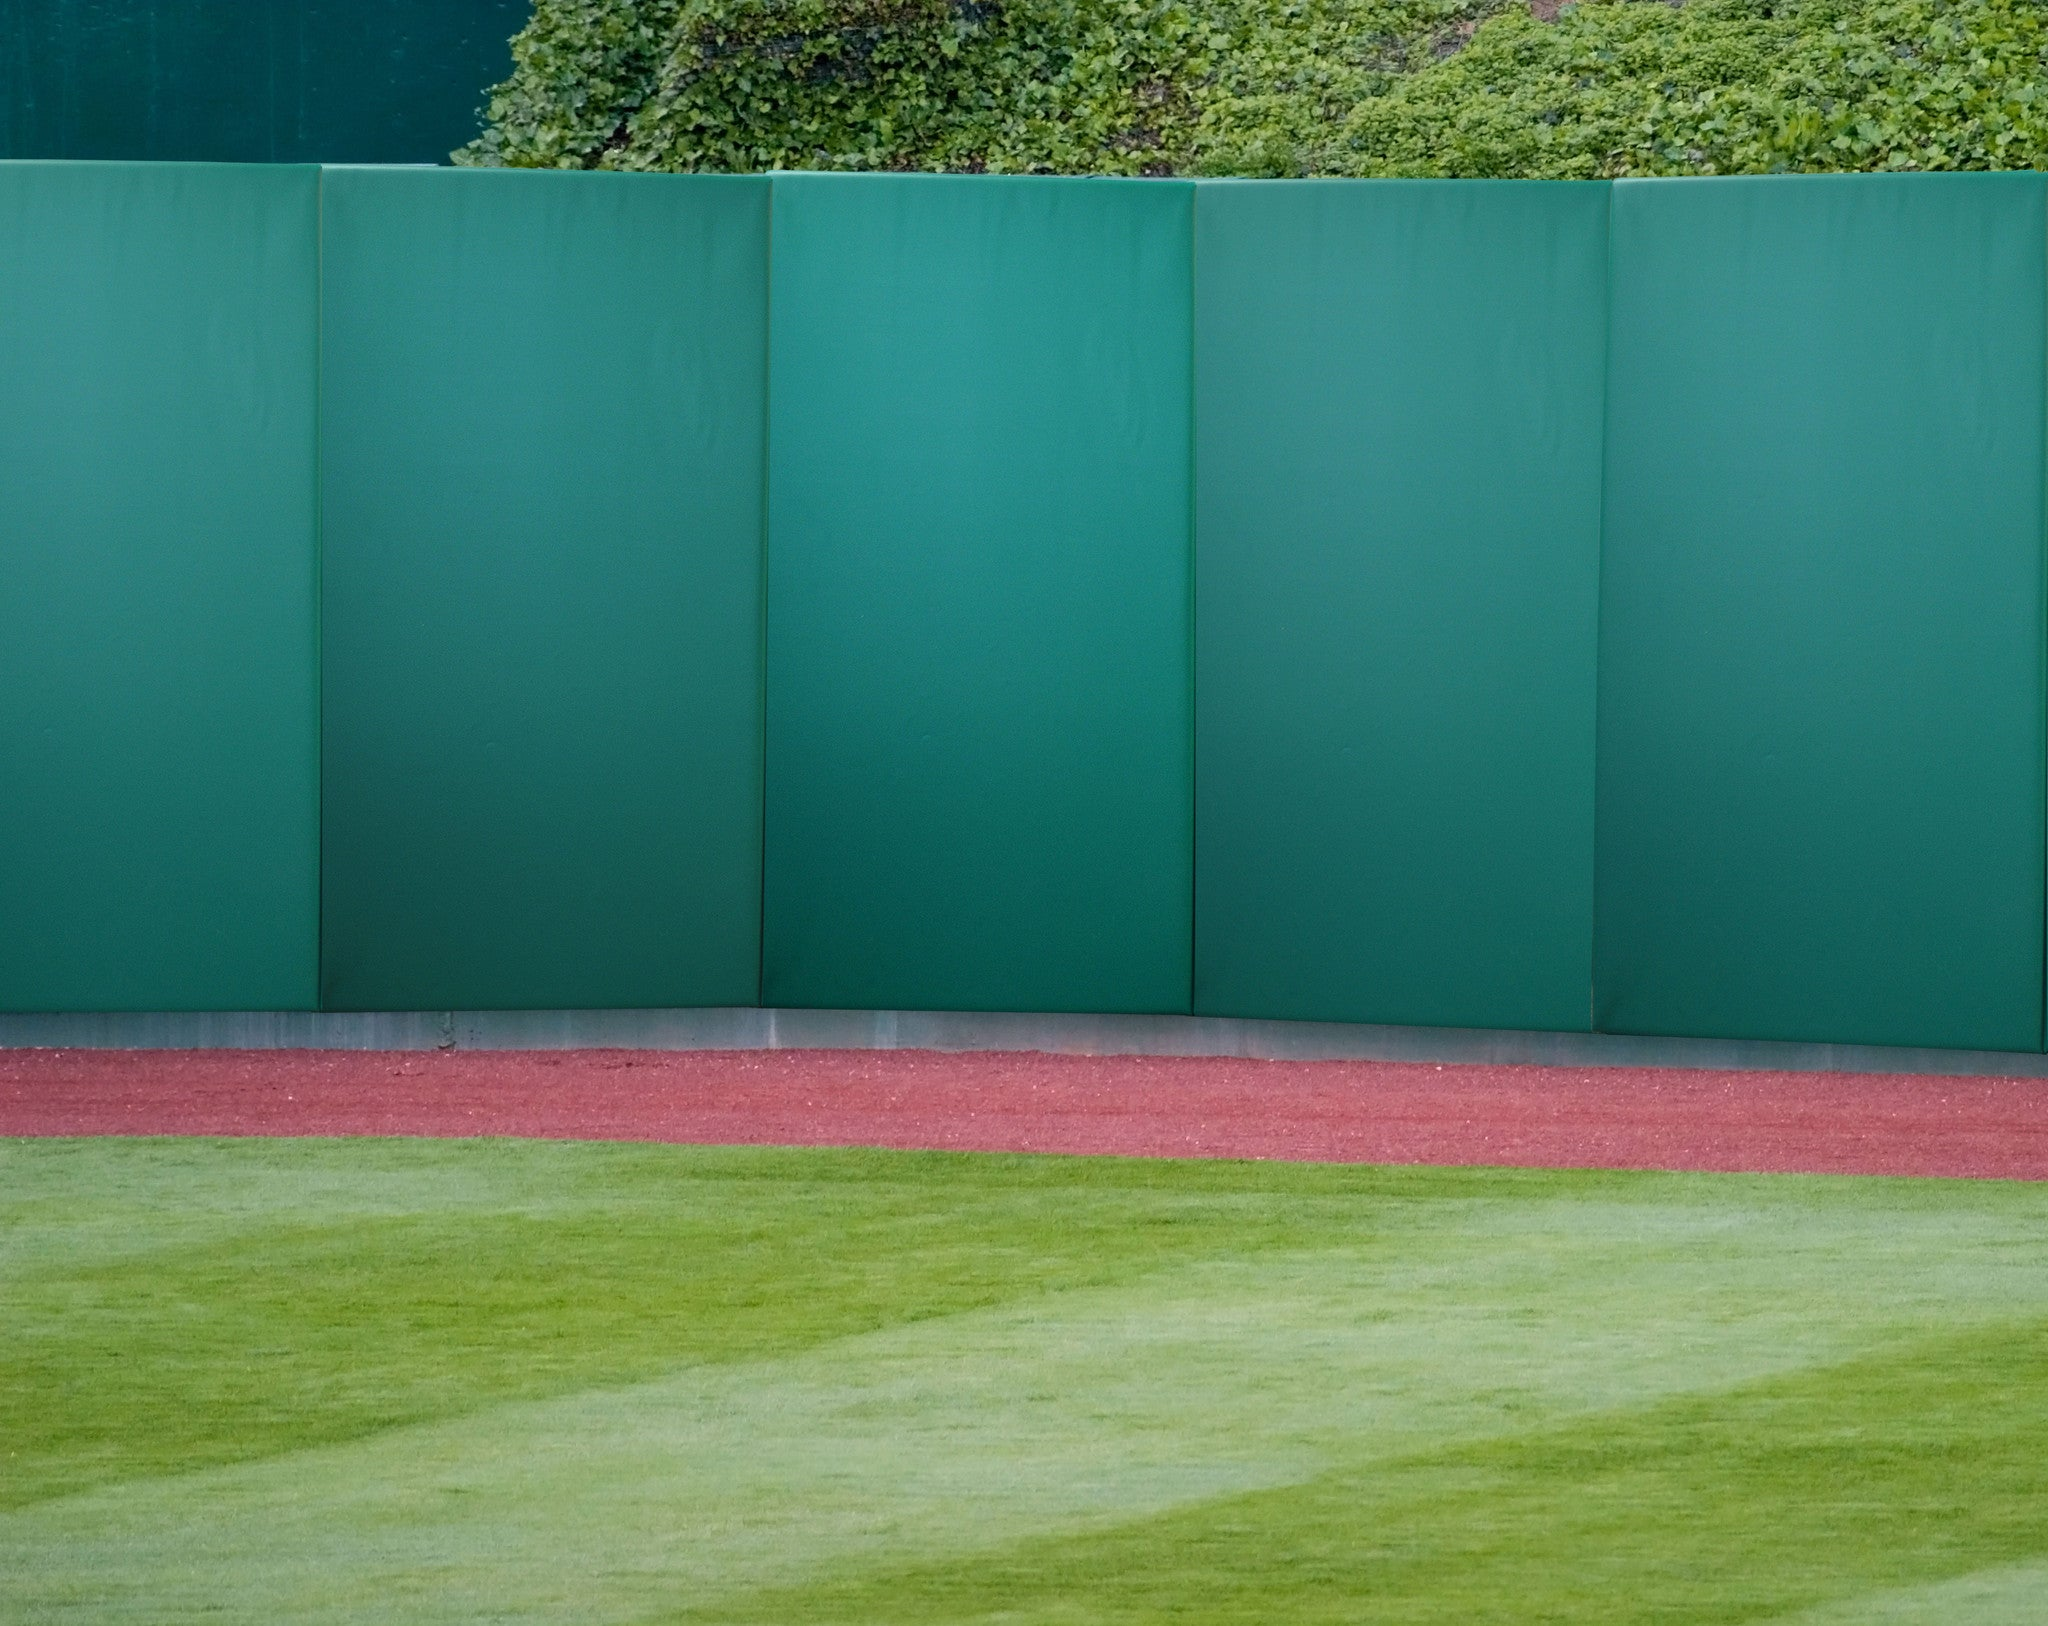 Professional Quality Baseball Stadium Outfield 3 Quot Thick